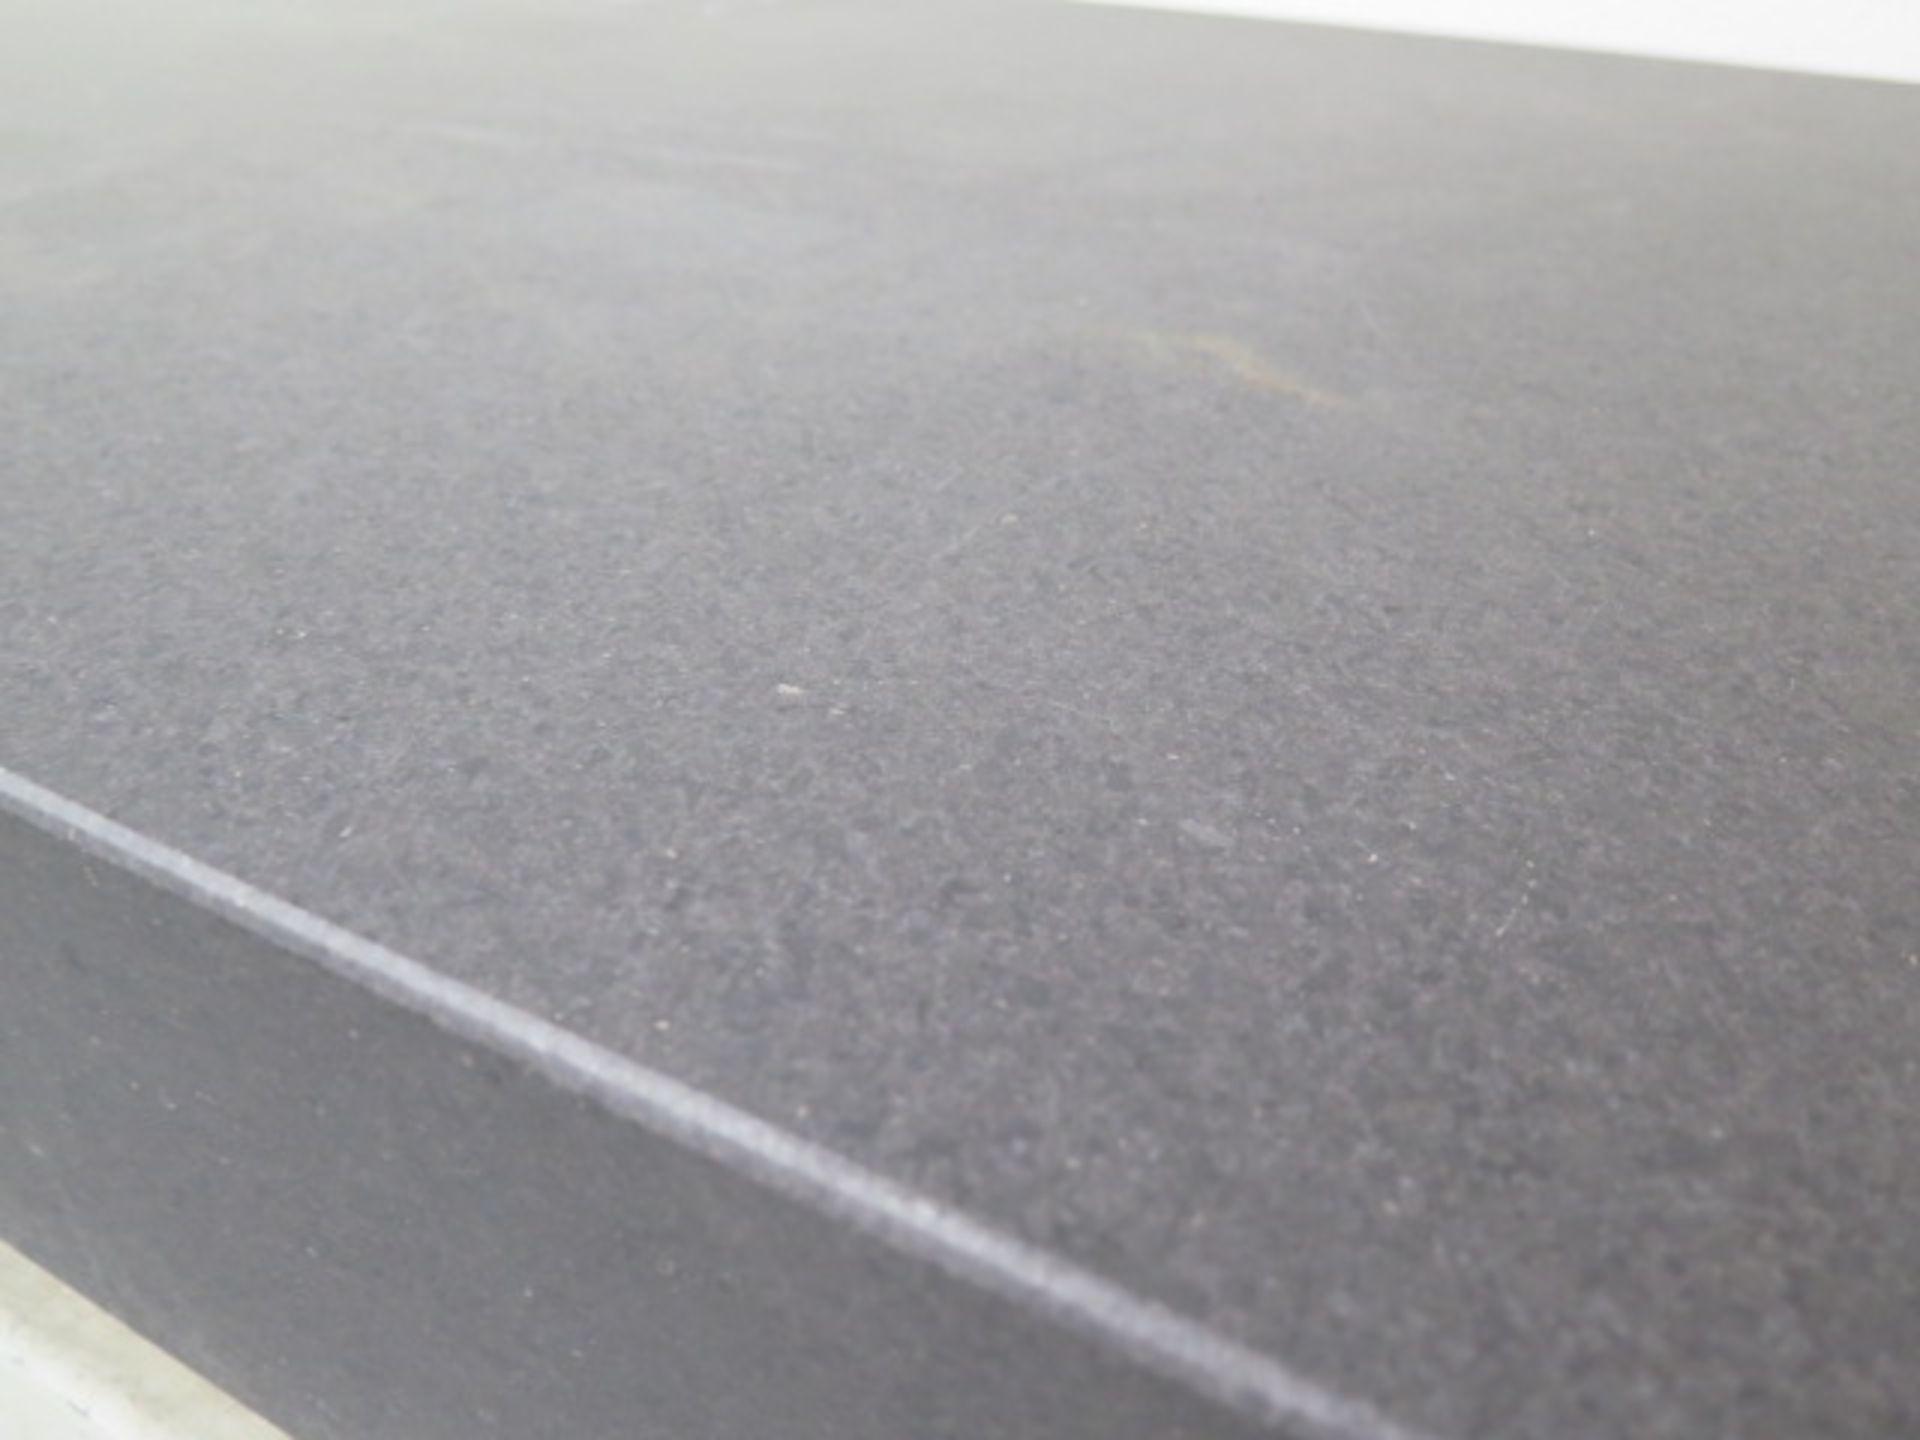 """Mojave 24"""" x 36"""" x 5"""" 2-Ledge Granite Surface Plate w/ Roll Stand (SOLD AS-IS - NO WARRANTY) - Image 4 of 4"""